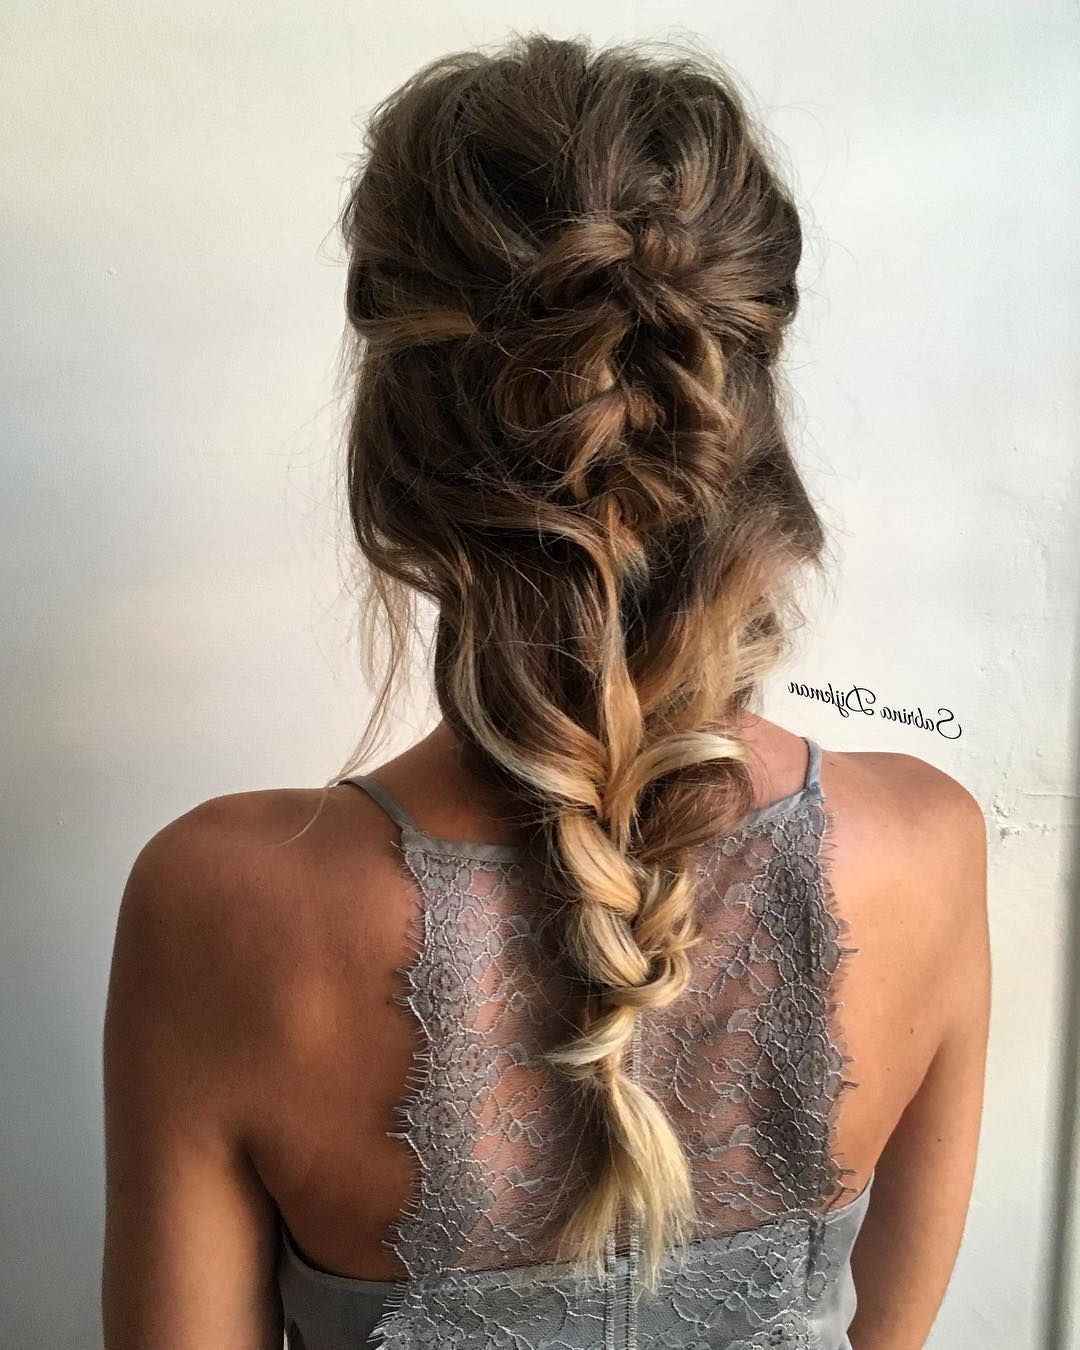 Gorgeous Hairstyle Inspiration – Updo Wedding Hairstyle Inside Most Current Naturally Textured Updo Hairstyles (View 16 of 20)